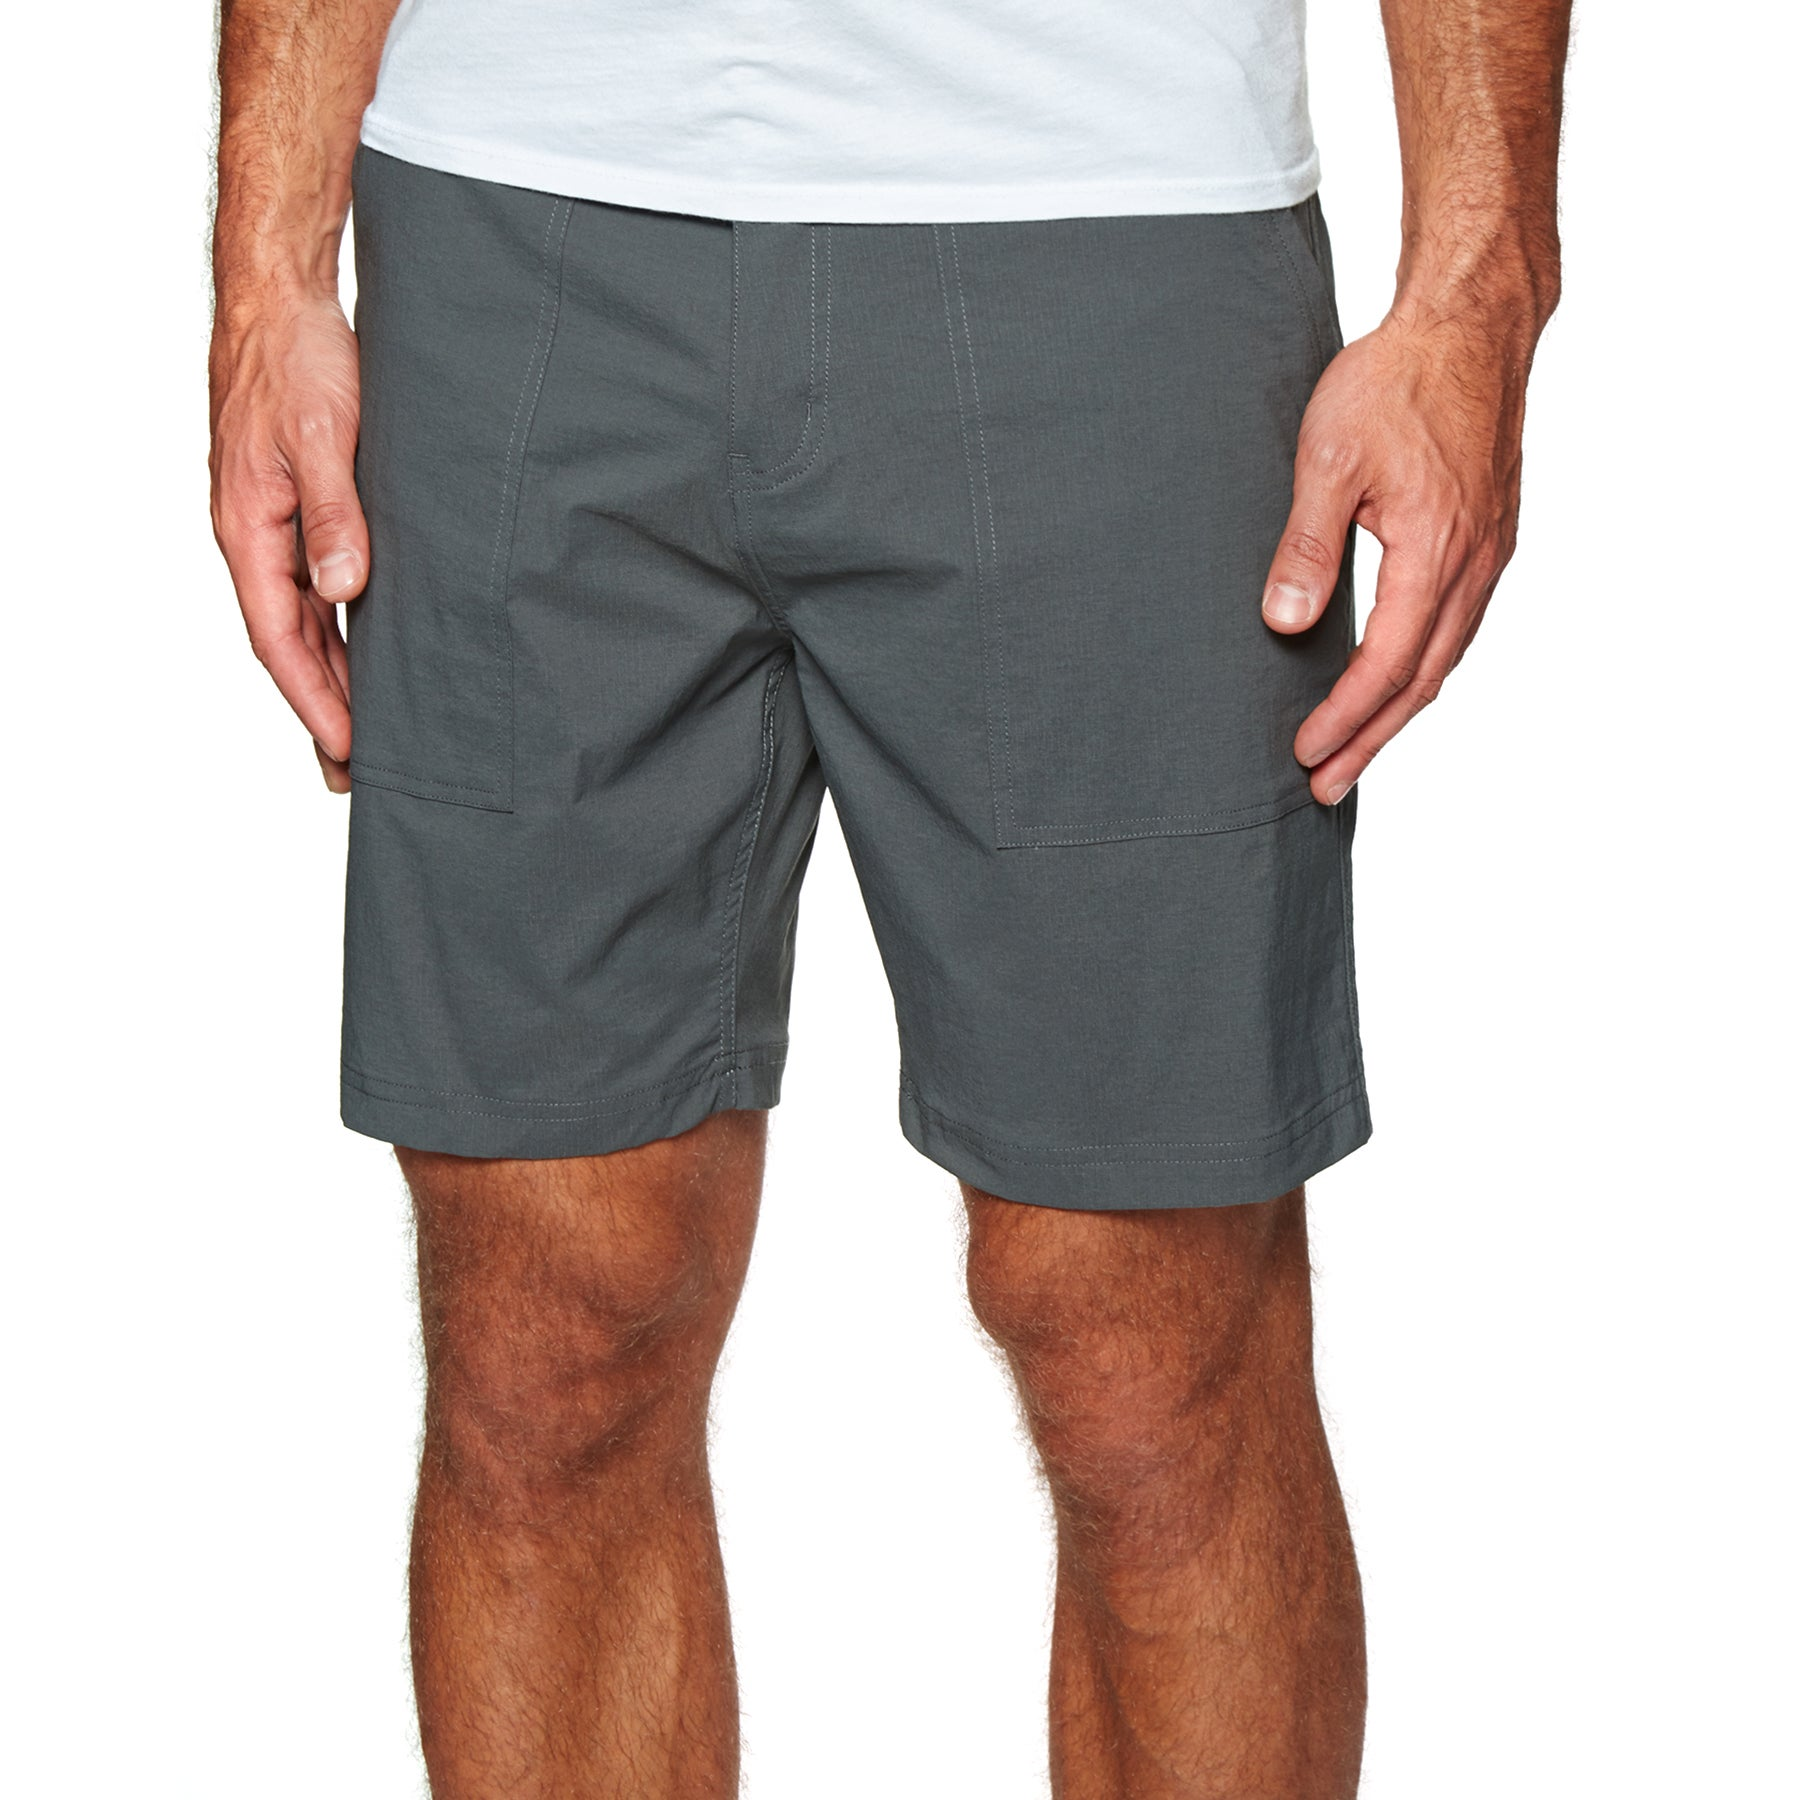 Shorts Depactus Station - Dark Charcoal